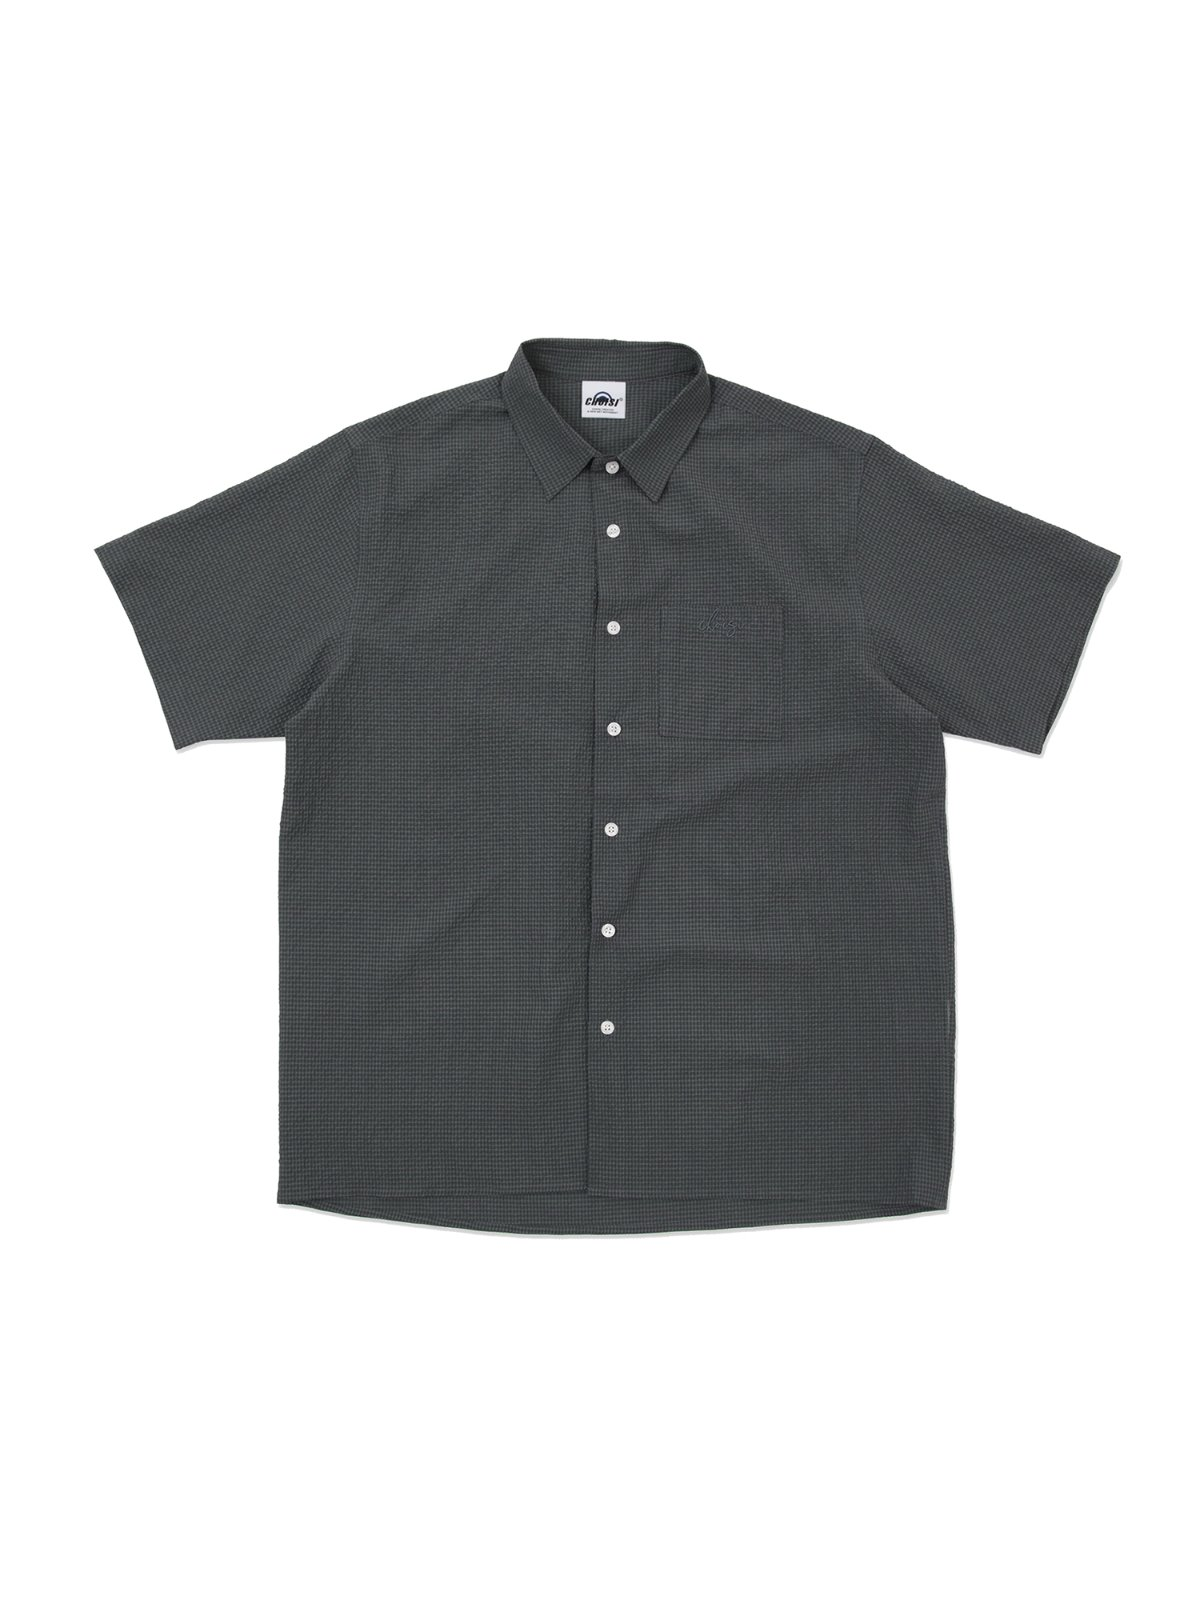 Blow shirt,Charcoal green